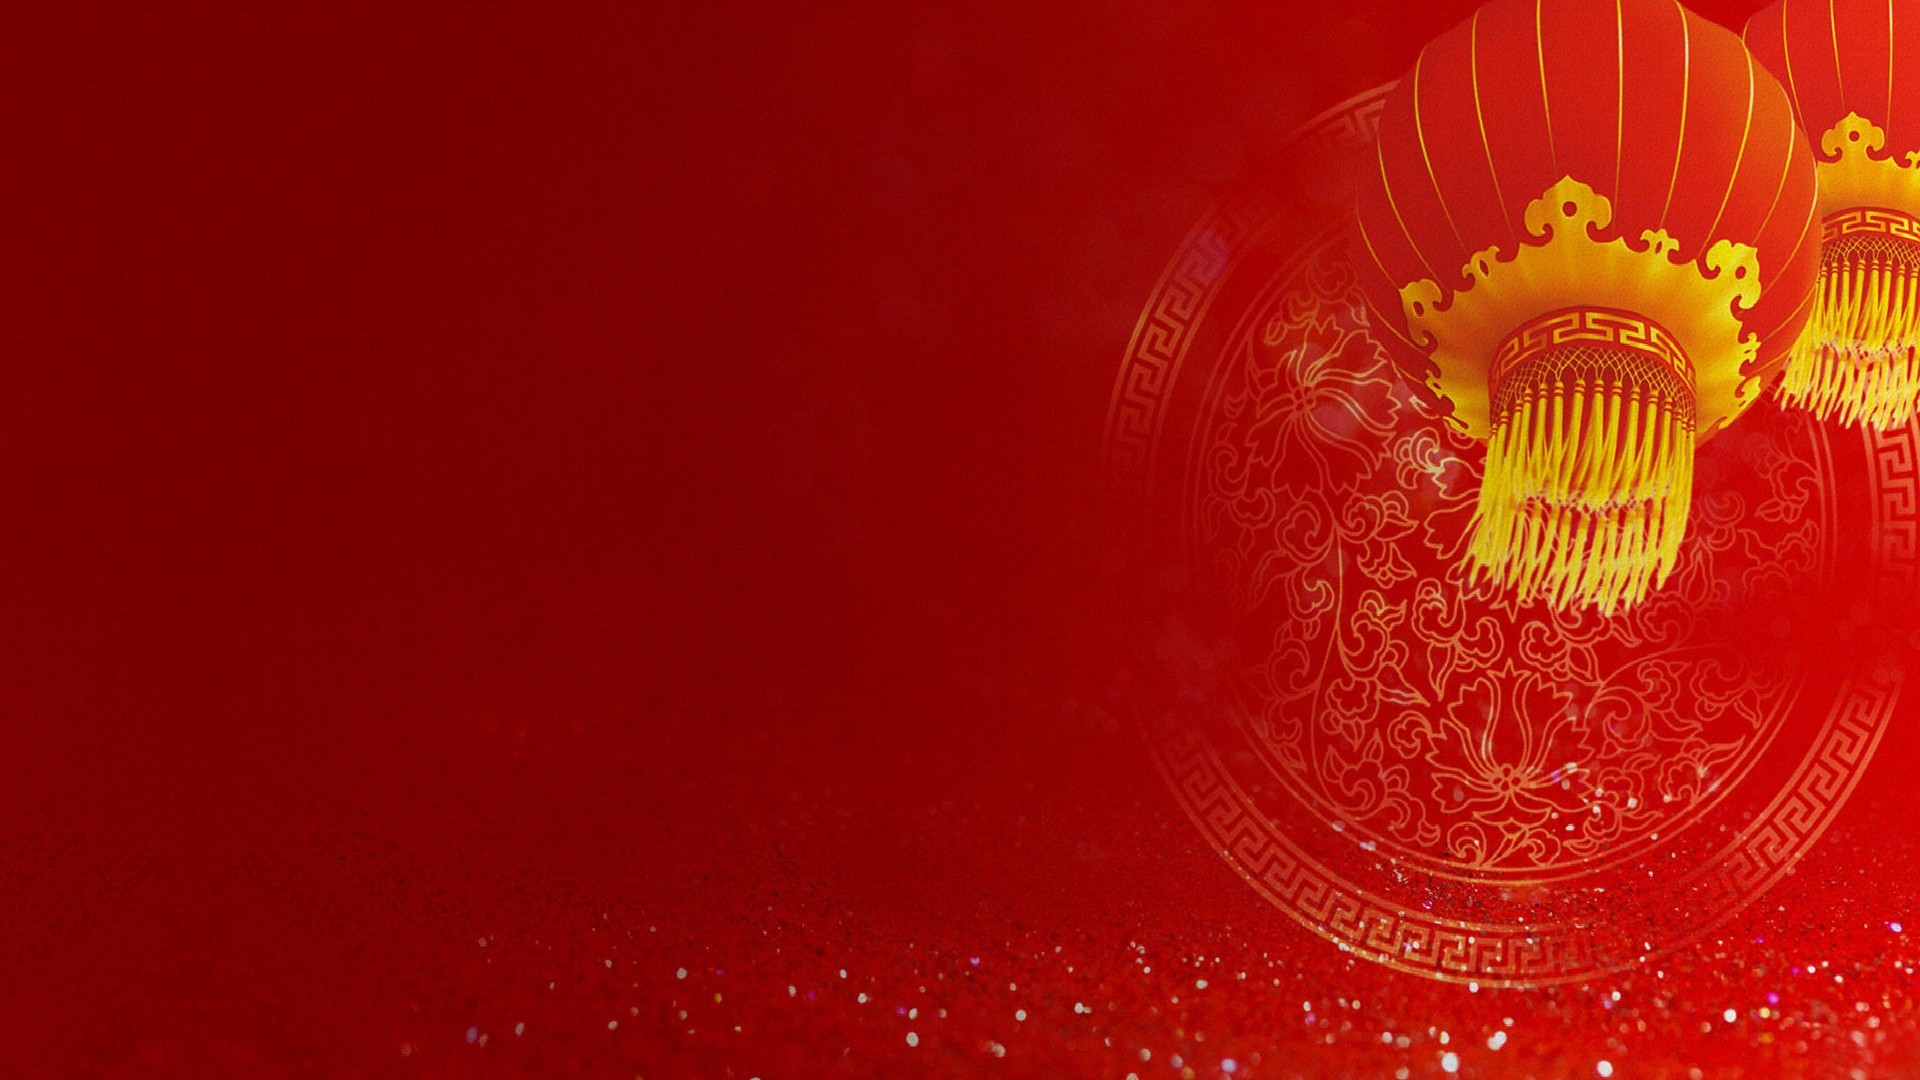 Chinese Wallpaper Designs Download 1920x1080